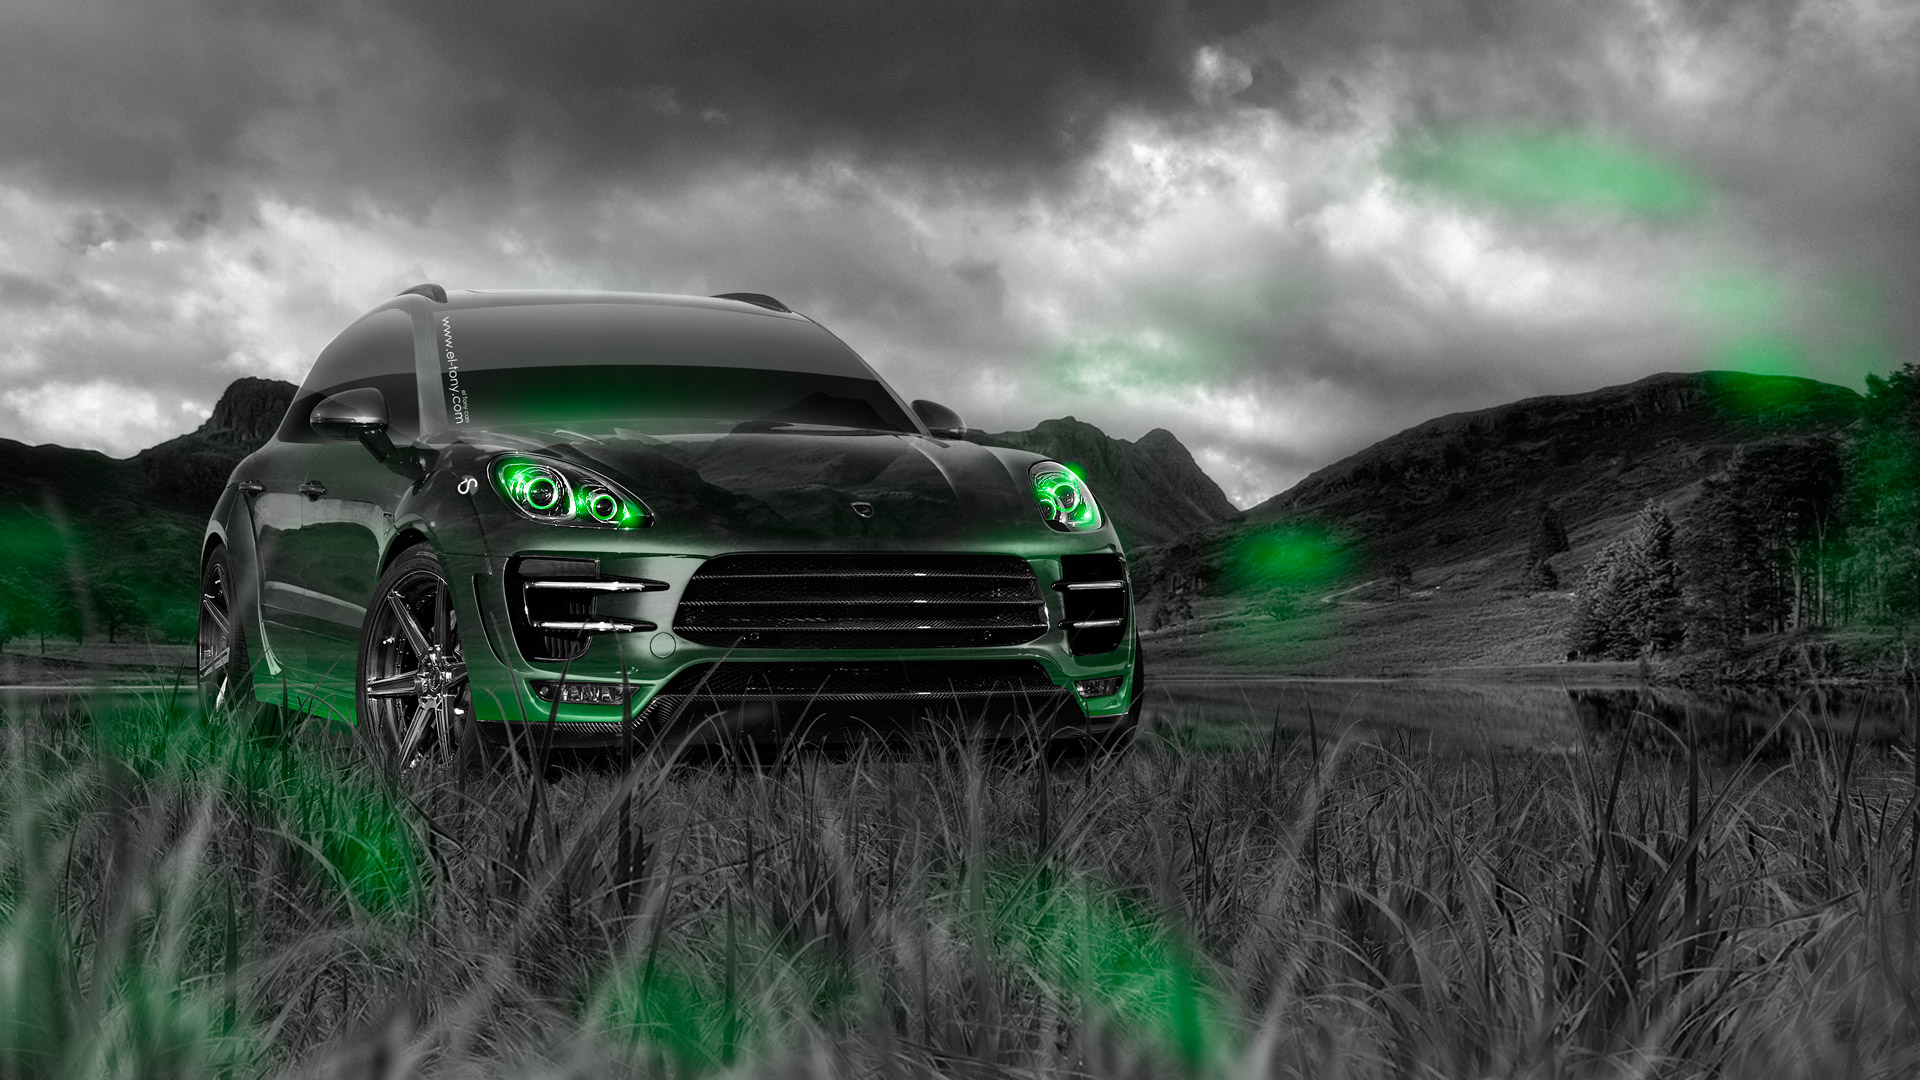 Beau ... Porsche Macan Crossover Crystal Nature Car 2014 Art  ...